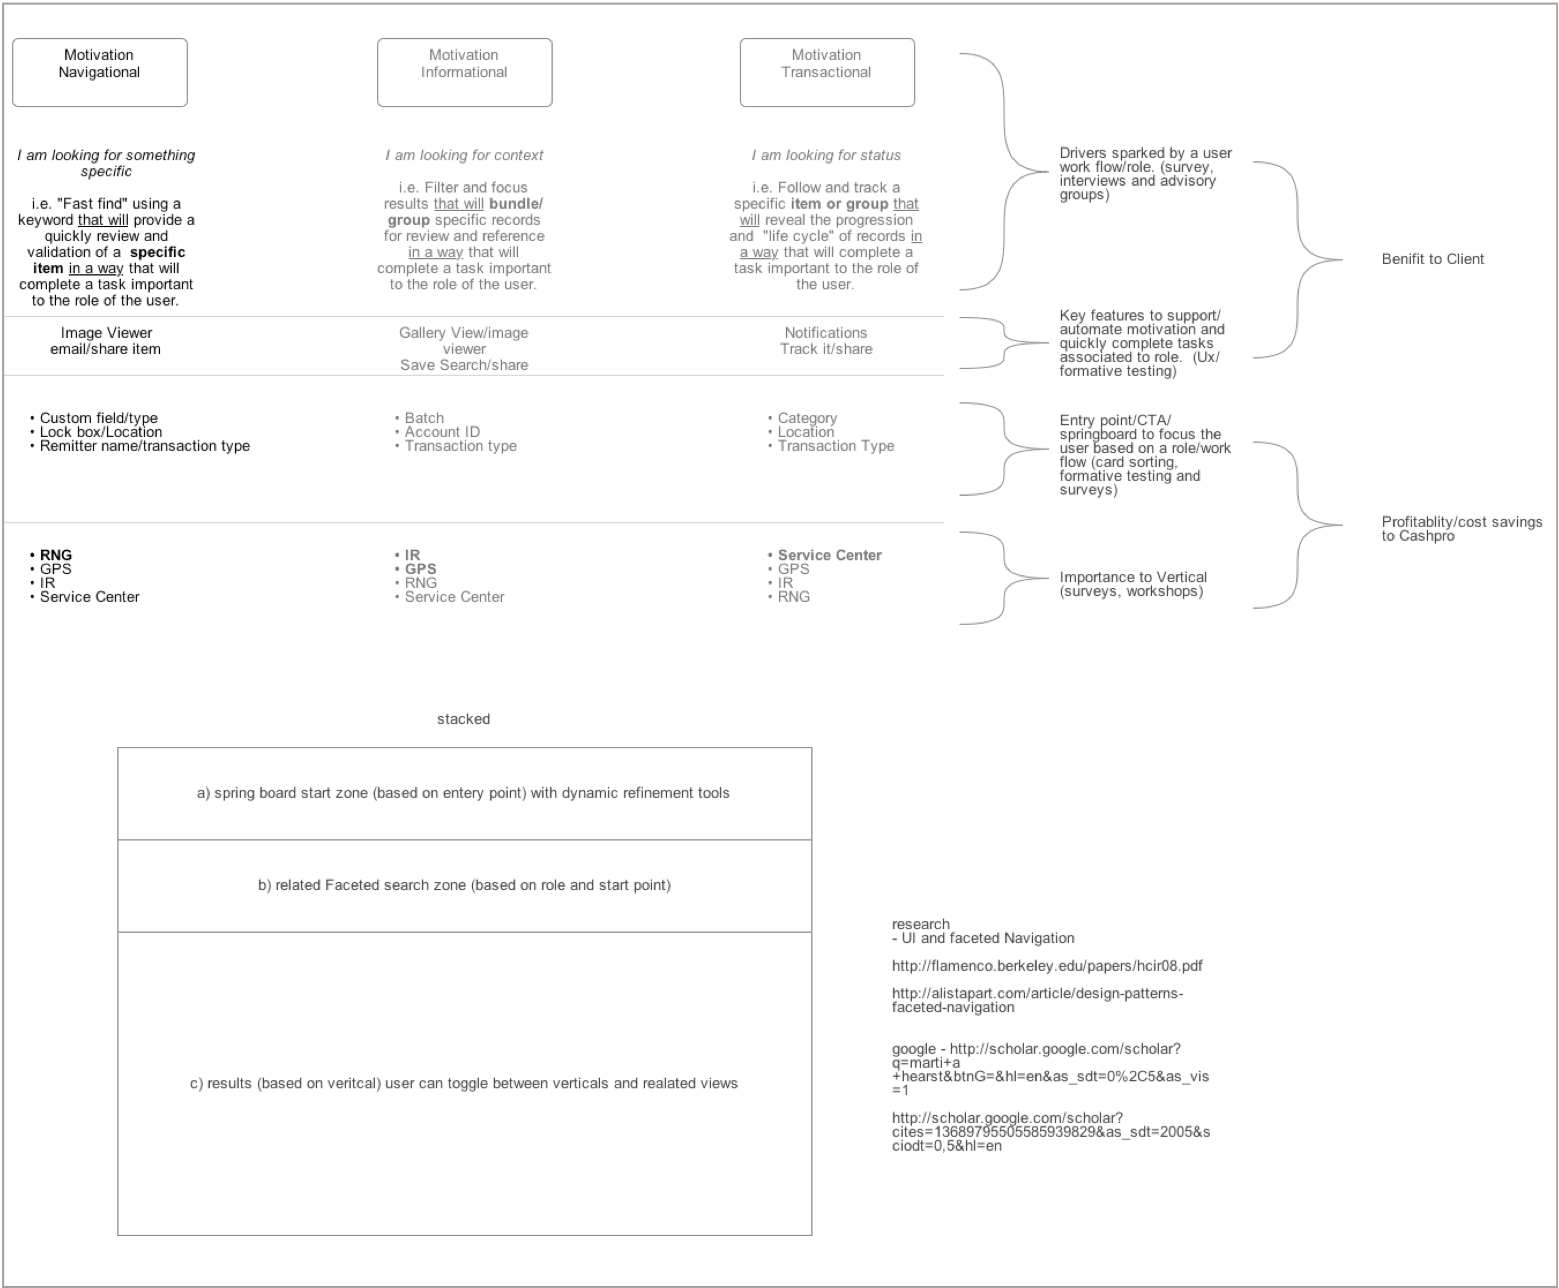 Framework for strategy help guide conversations with BA.